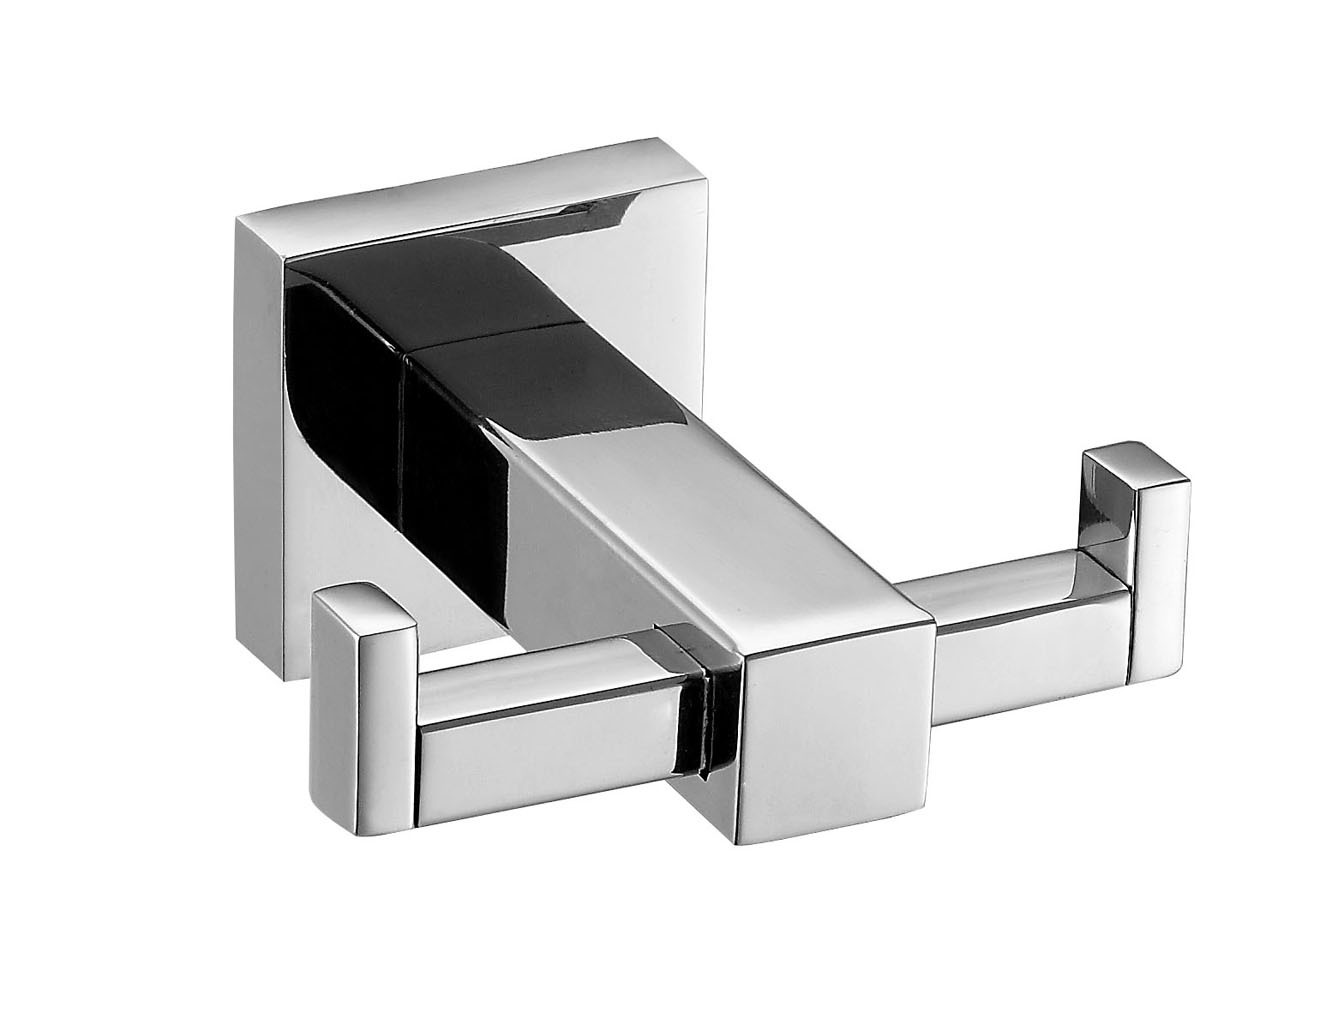 Norye ss bathroom accessories supplier for home use